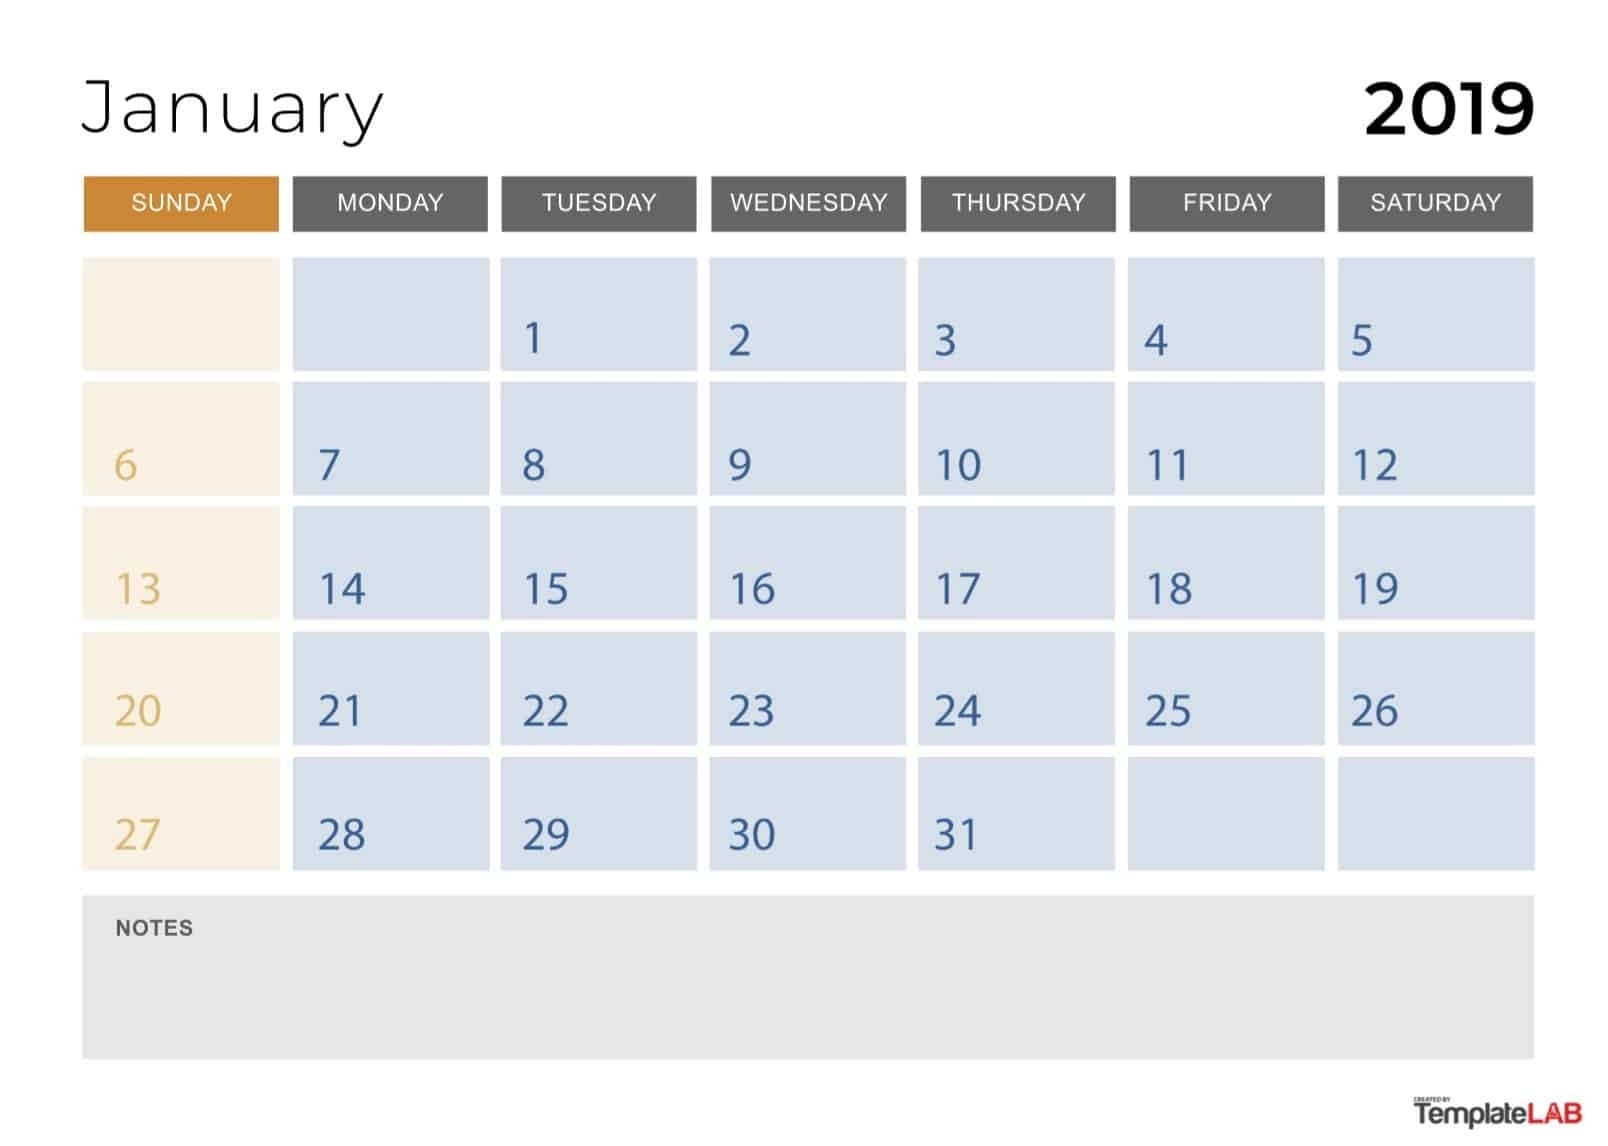 2019 Printable Calendars [Monthly, With Holidays, Yearly] ᐅ inside Printable Calendar 2019 With Lines